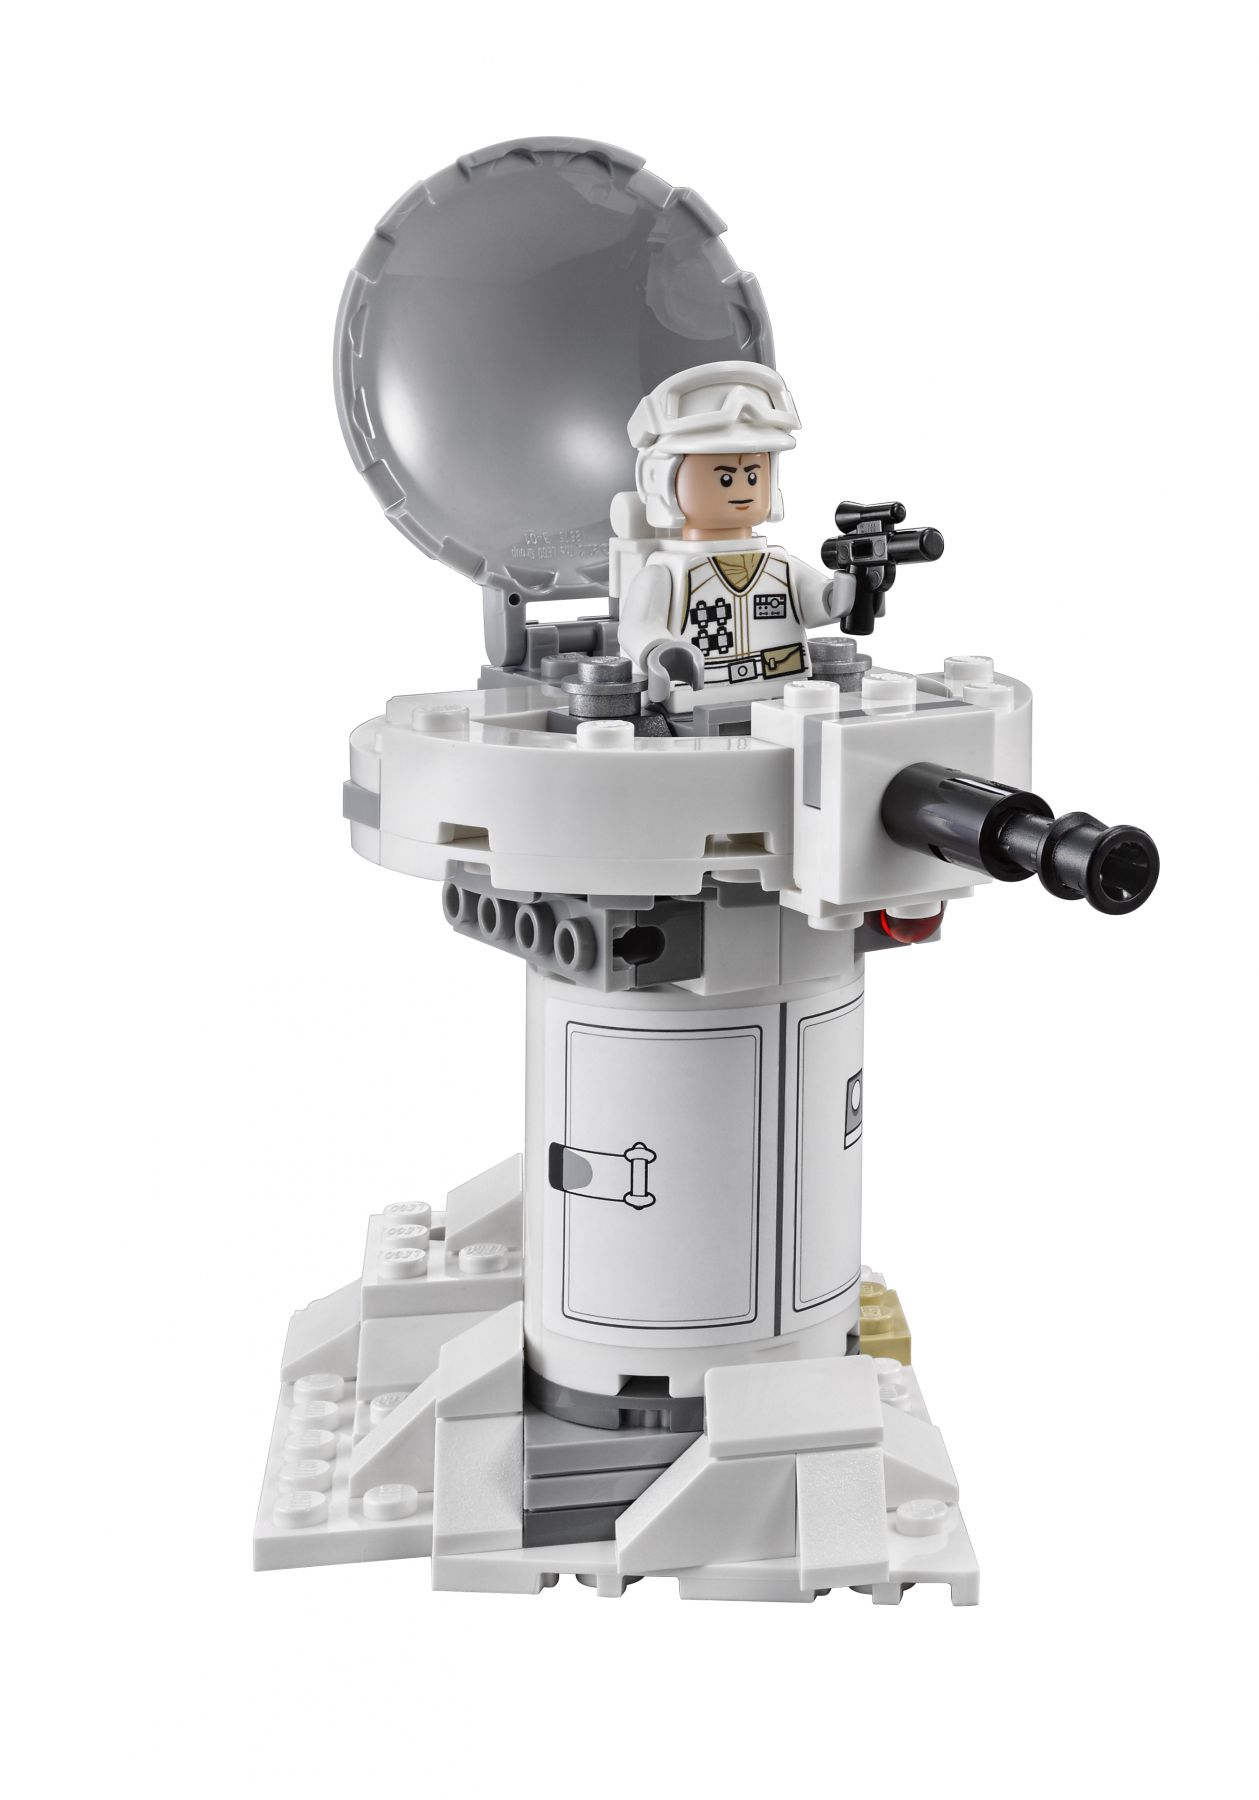 LEGO Star Wars 75098 Angriff auf Hoth™ LEGO-75098-Assault-on-Hoth-Func_002_02.jpg